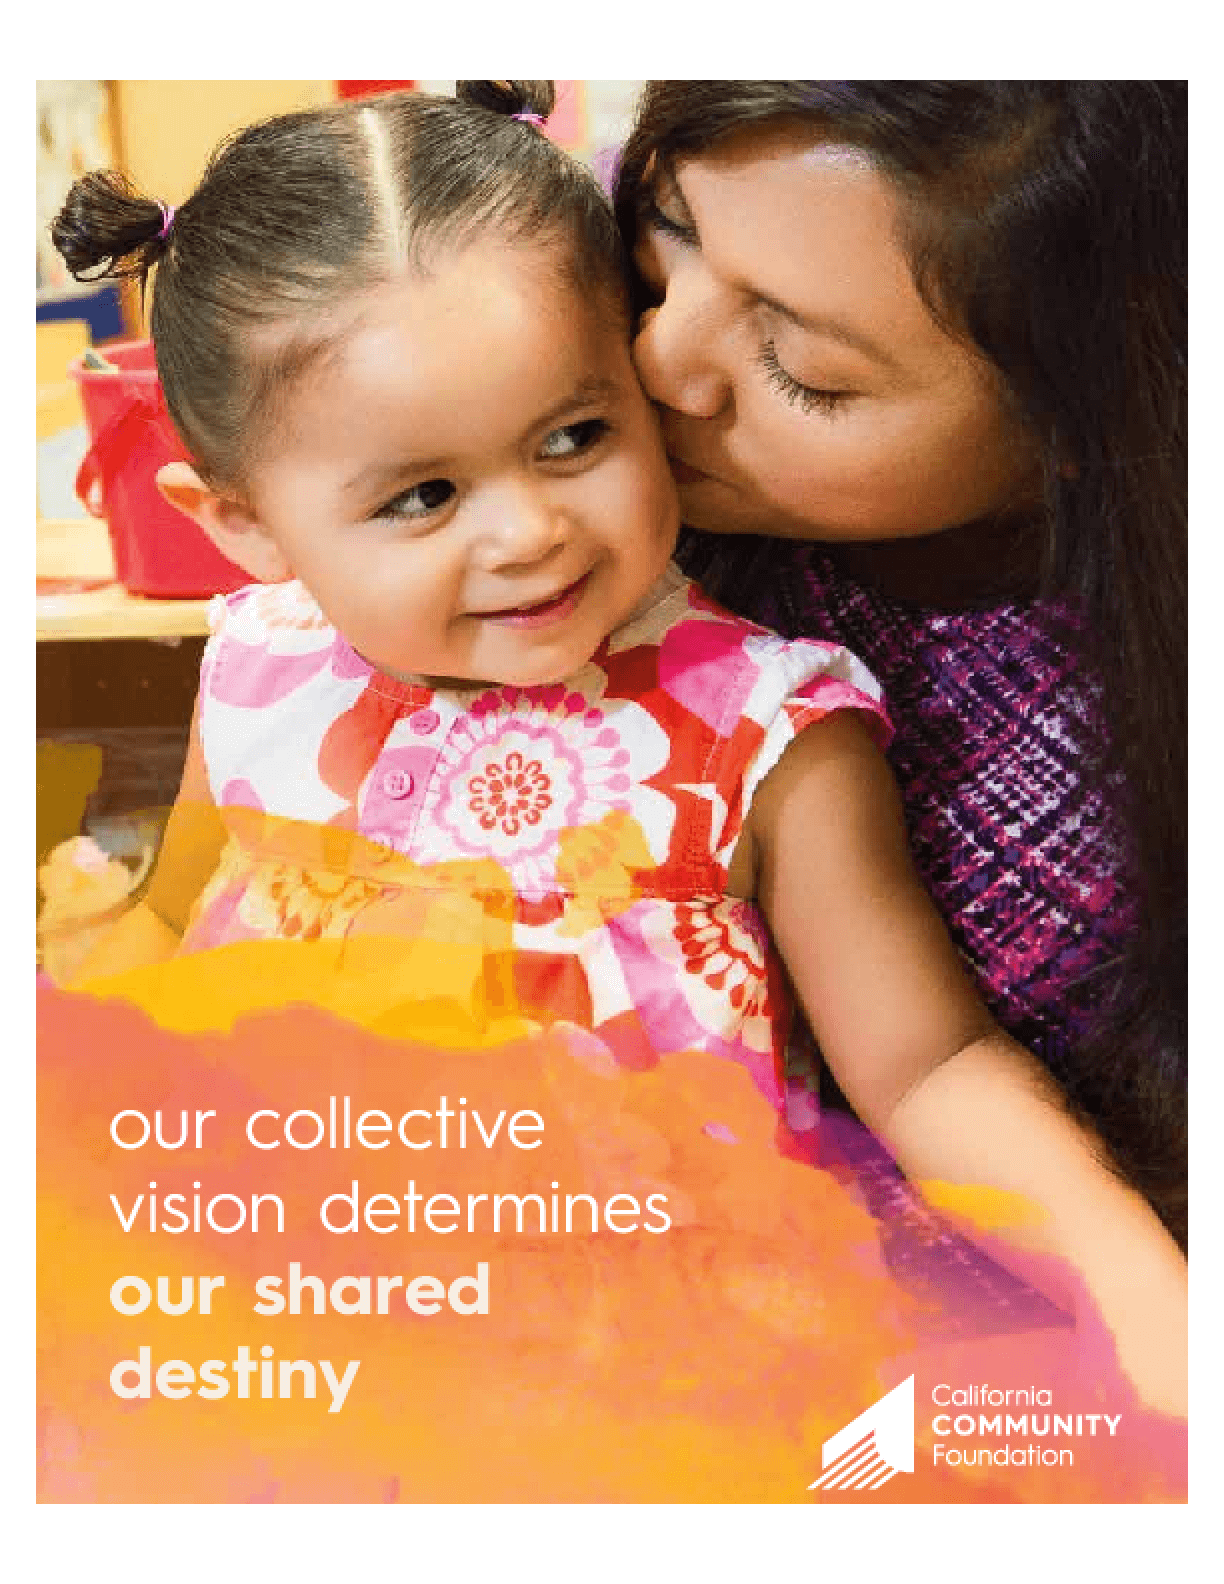 California Community Foundation 2014 - 2015 Annual Report